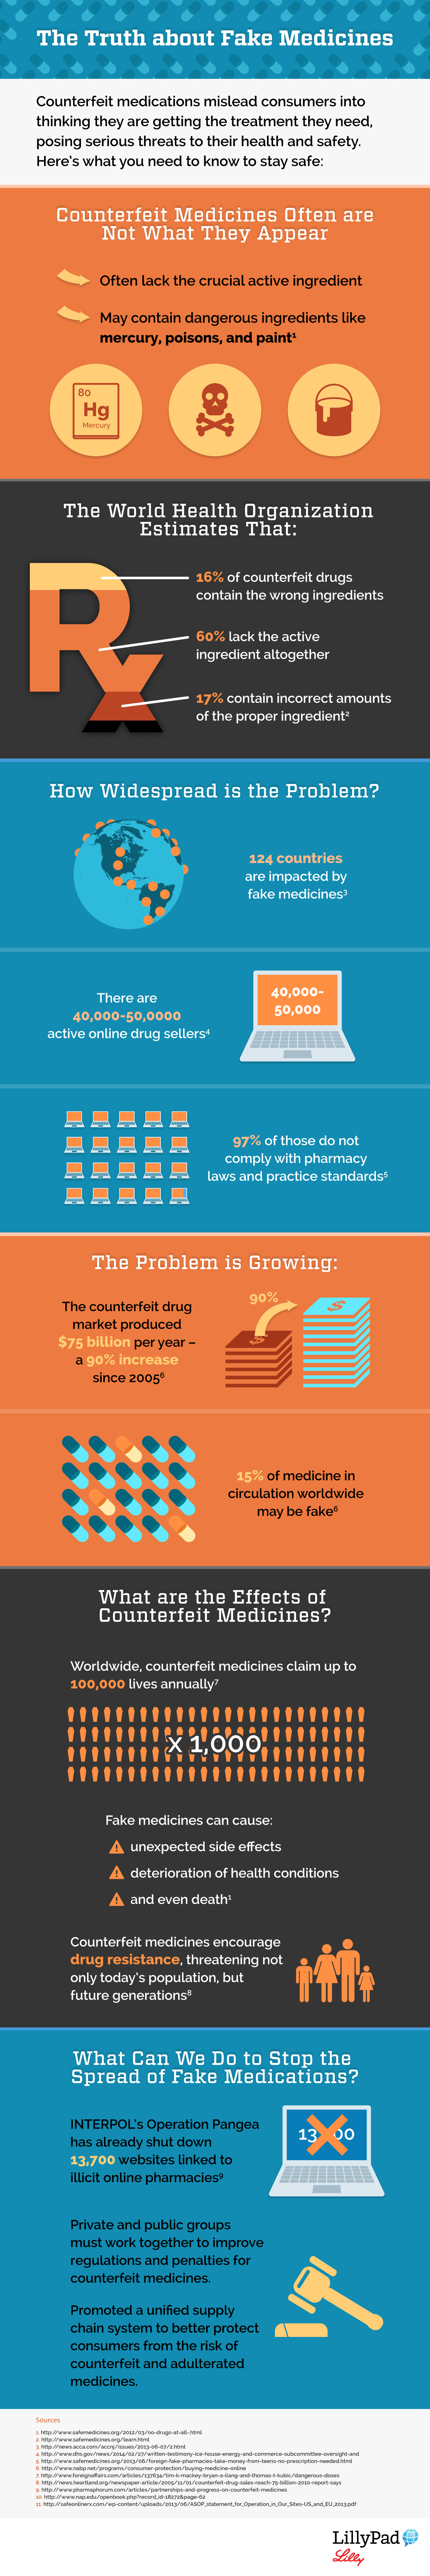 Disturbing Truths About Fake Medicines You Need To Know Infographic